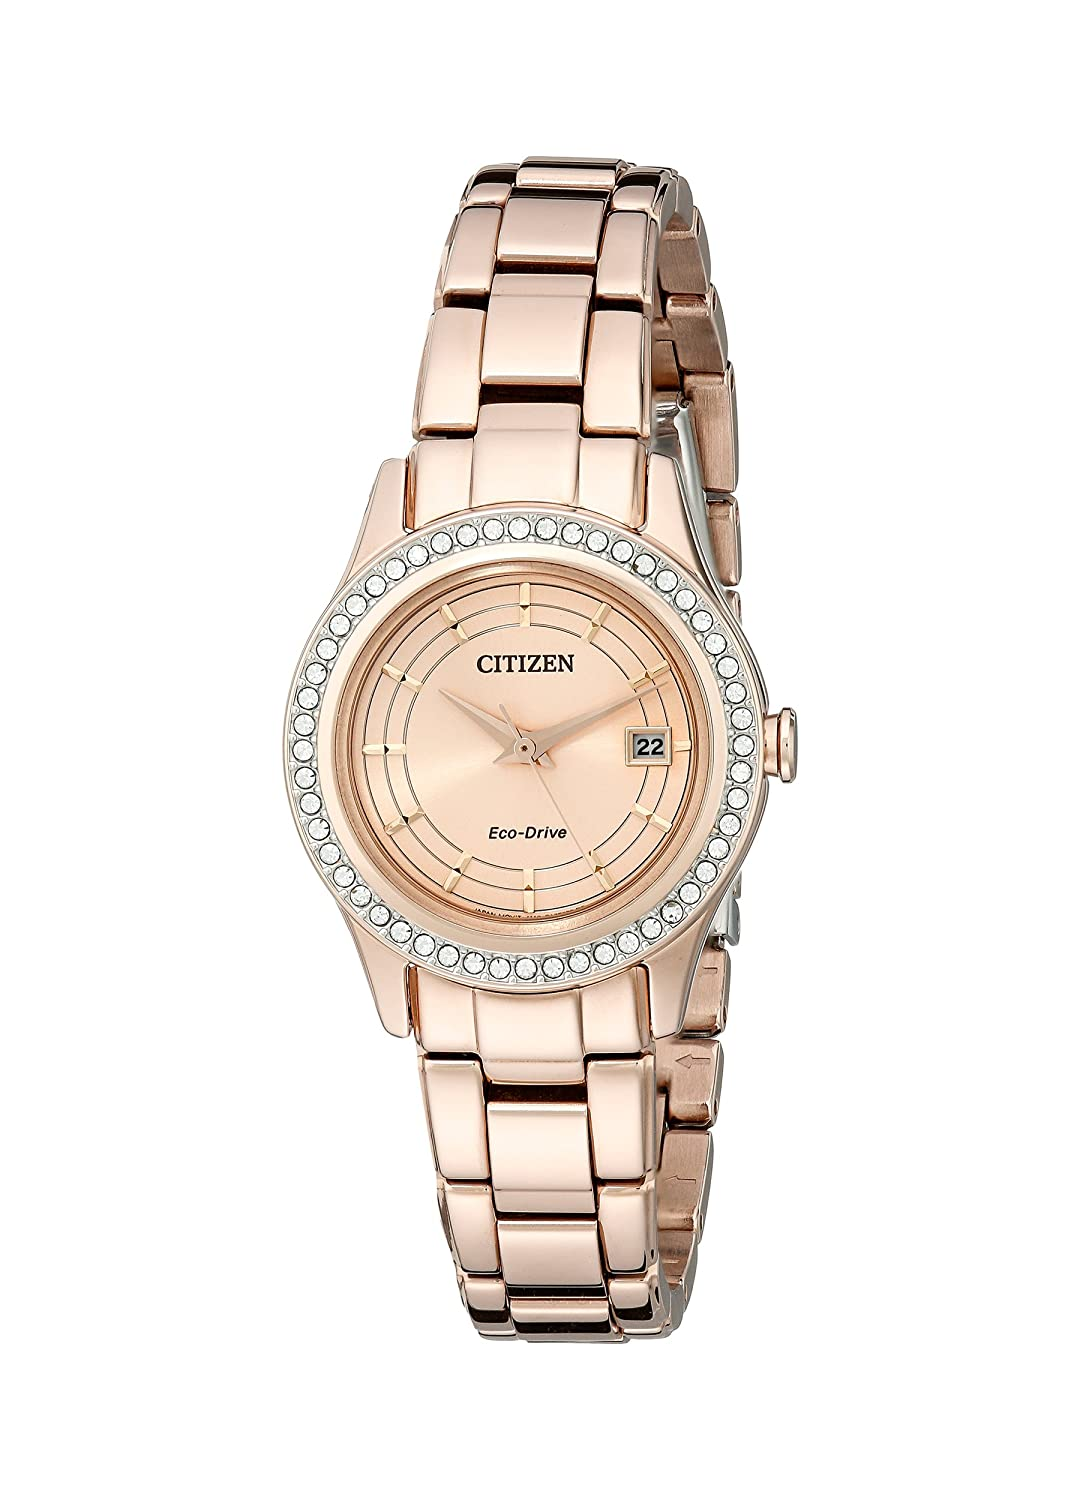 Citizen Women s Eco-Drive Silhouette Crystal Rose Gold-Tone Watch with Date, FE1123-51Q